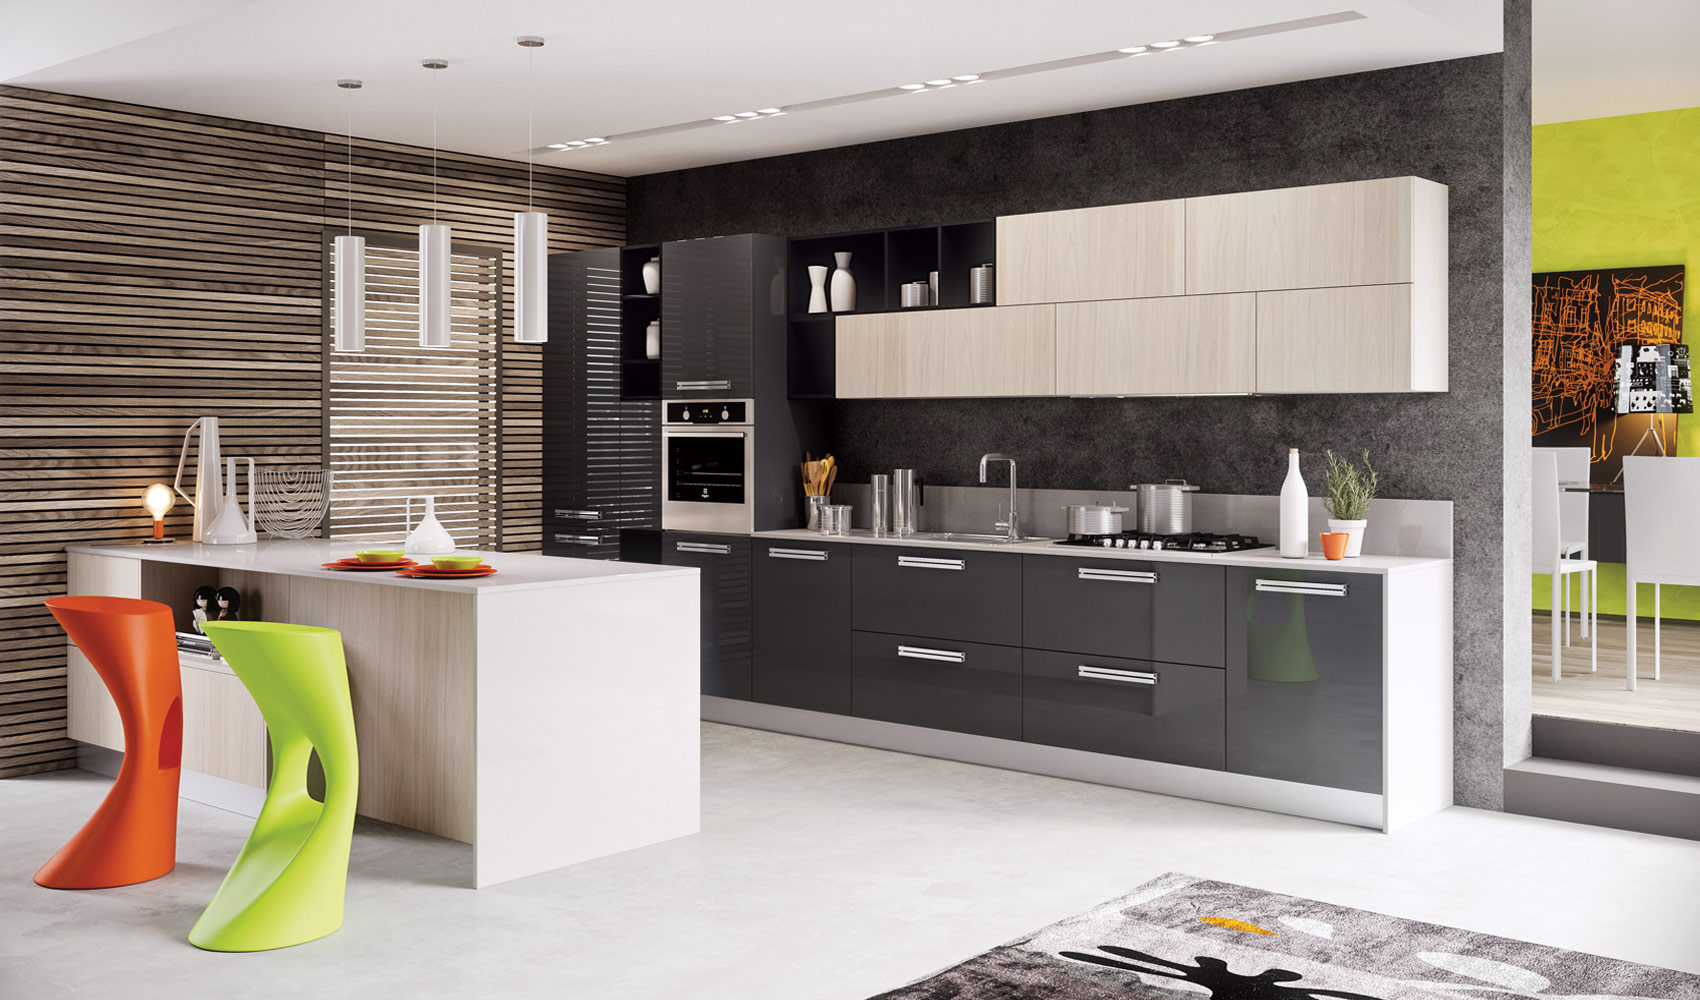 Contemporary kitchen design interior design ideas for Pics of modern kitchen designs